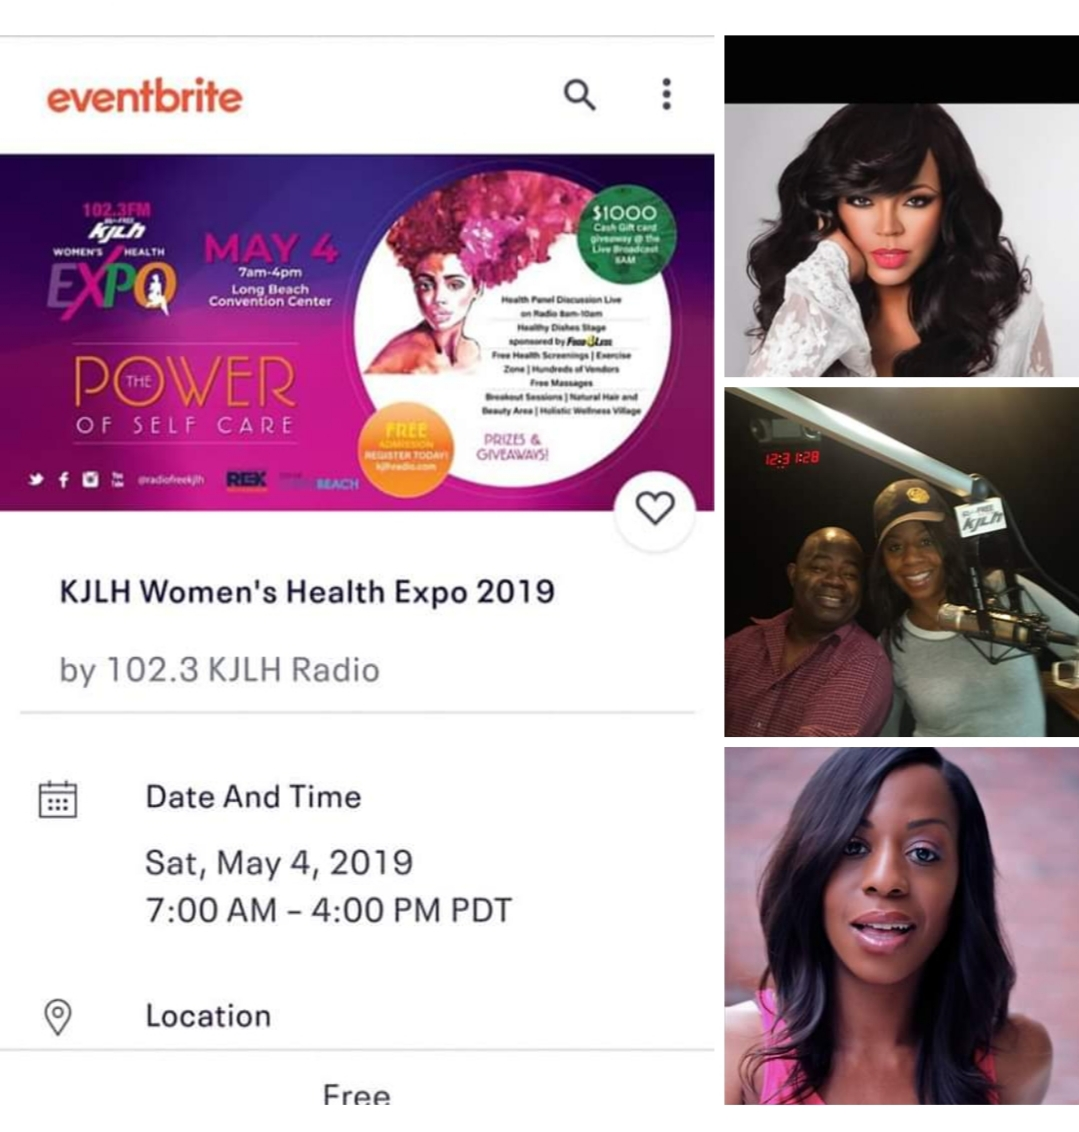 5/4/19, KJLH Women's Health Expo